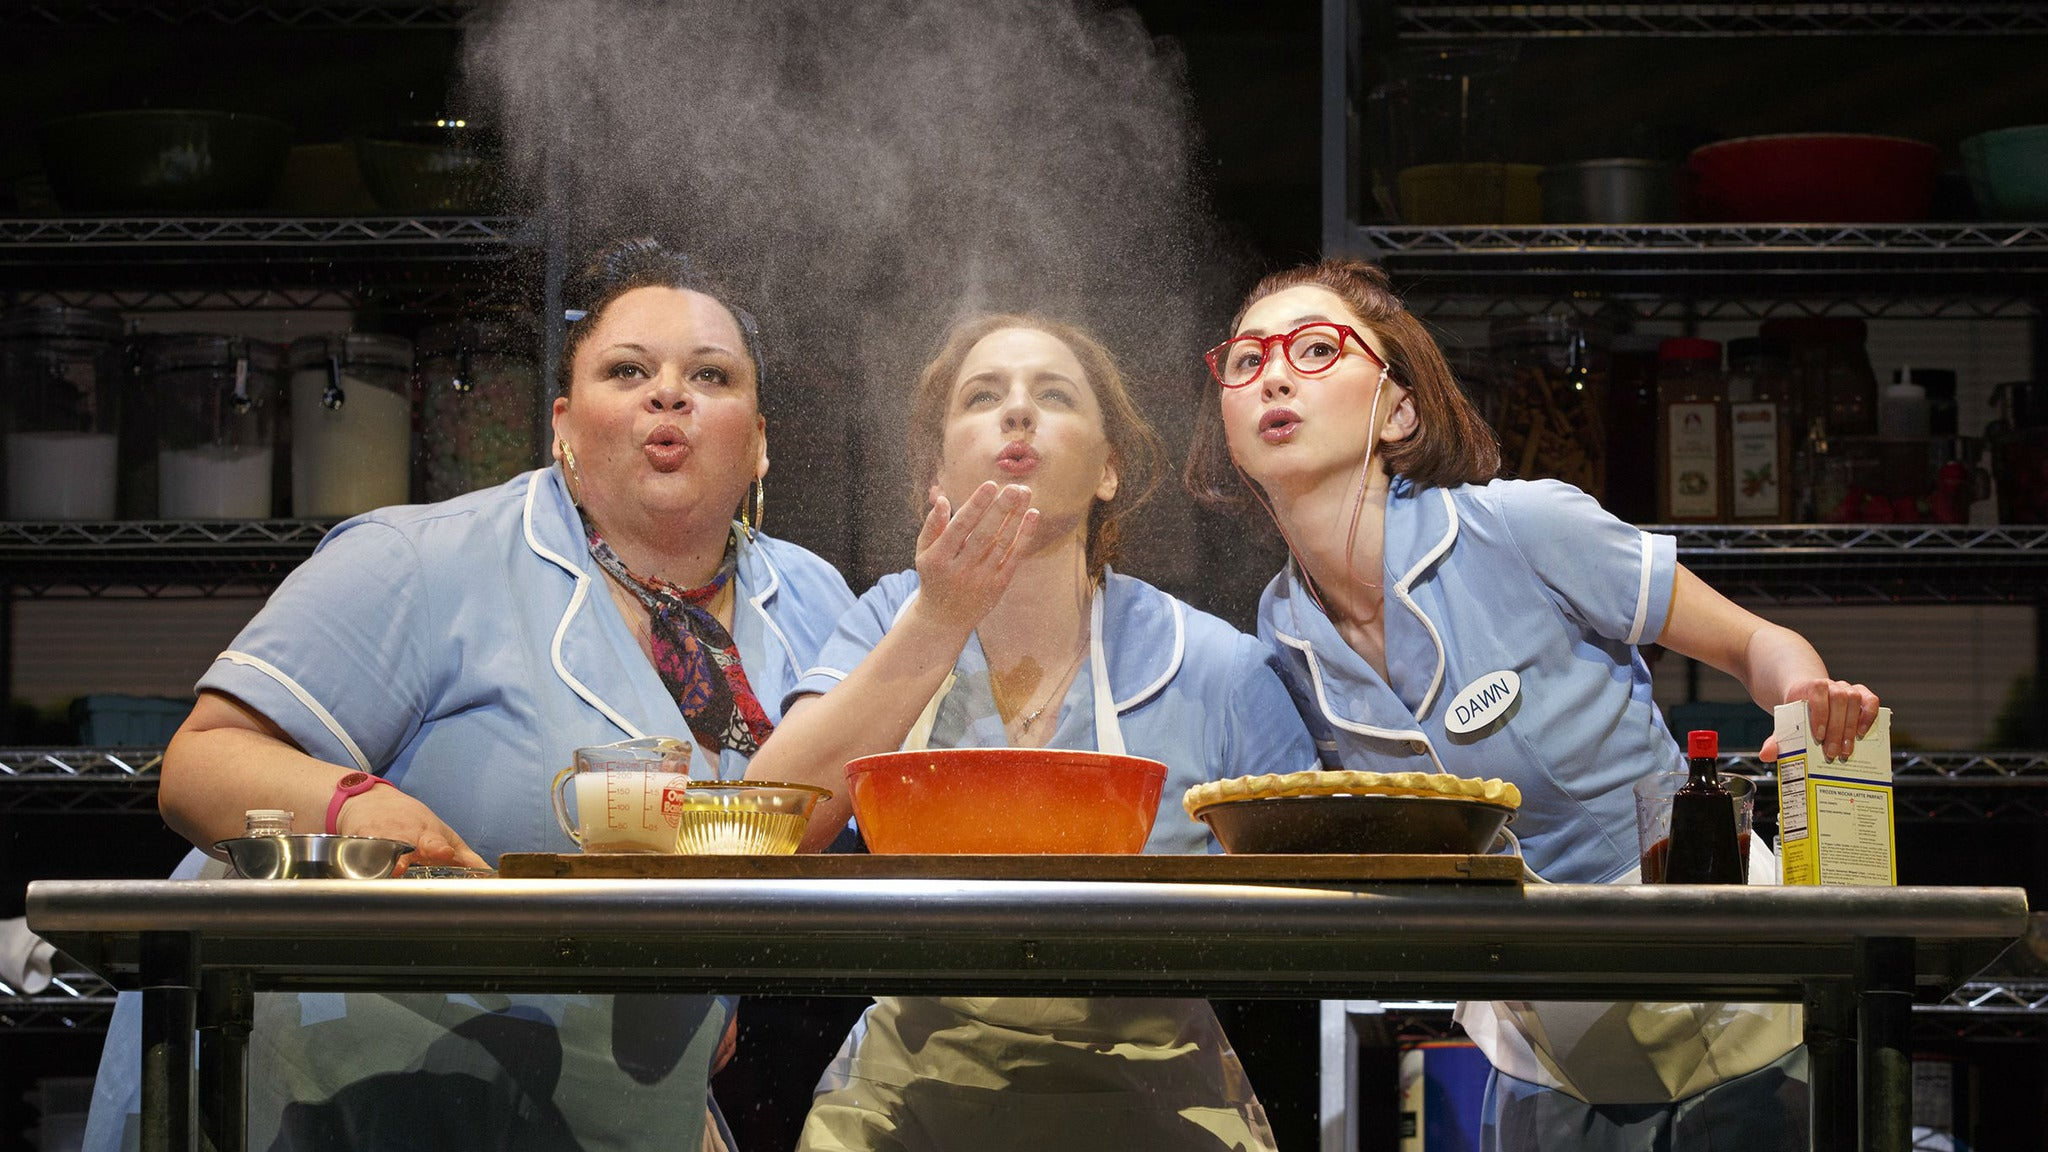 Waitress at Des Moines Civic Center - Des Moines, IA 50309